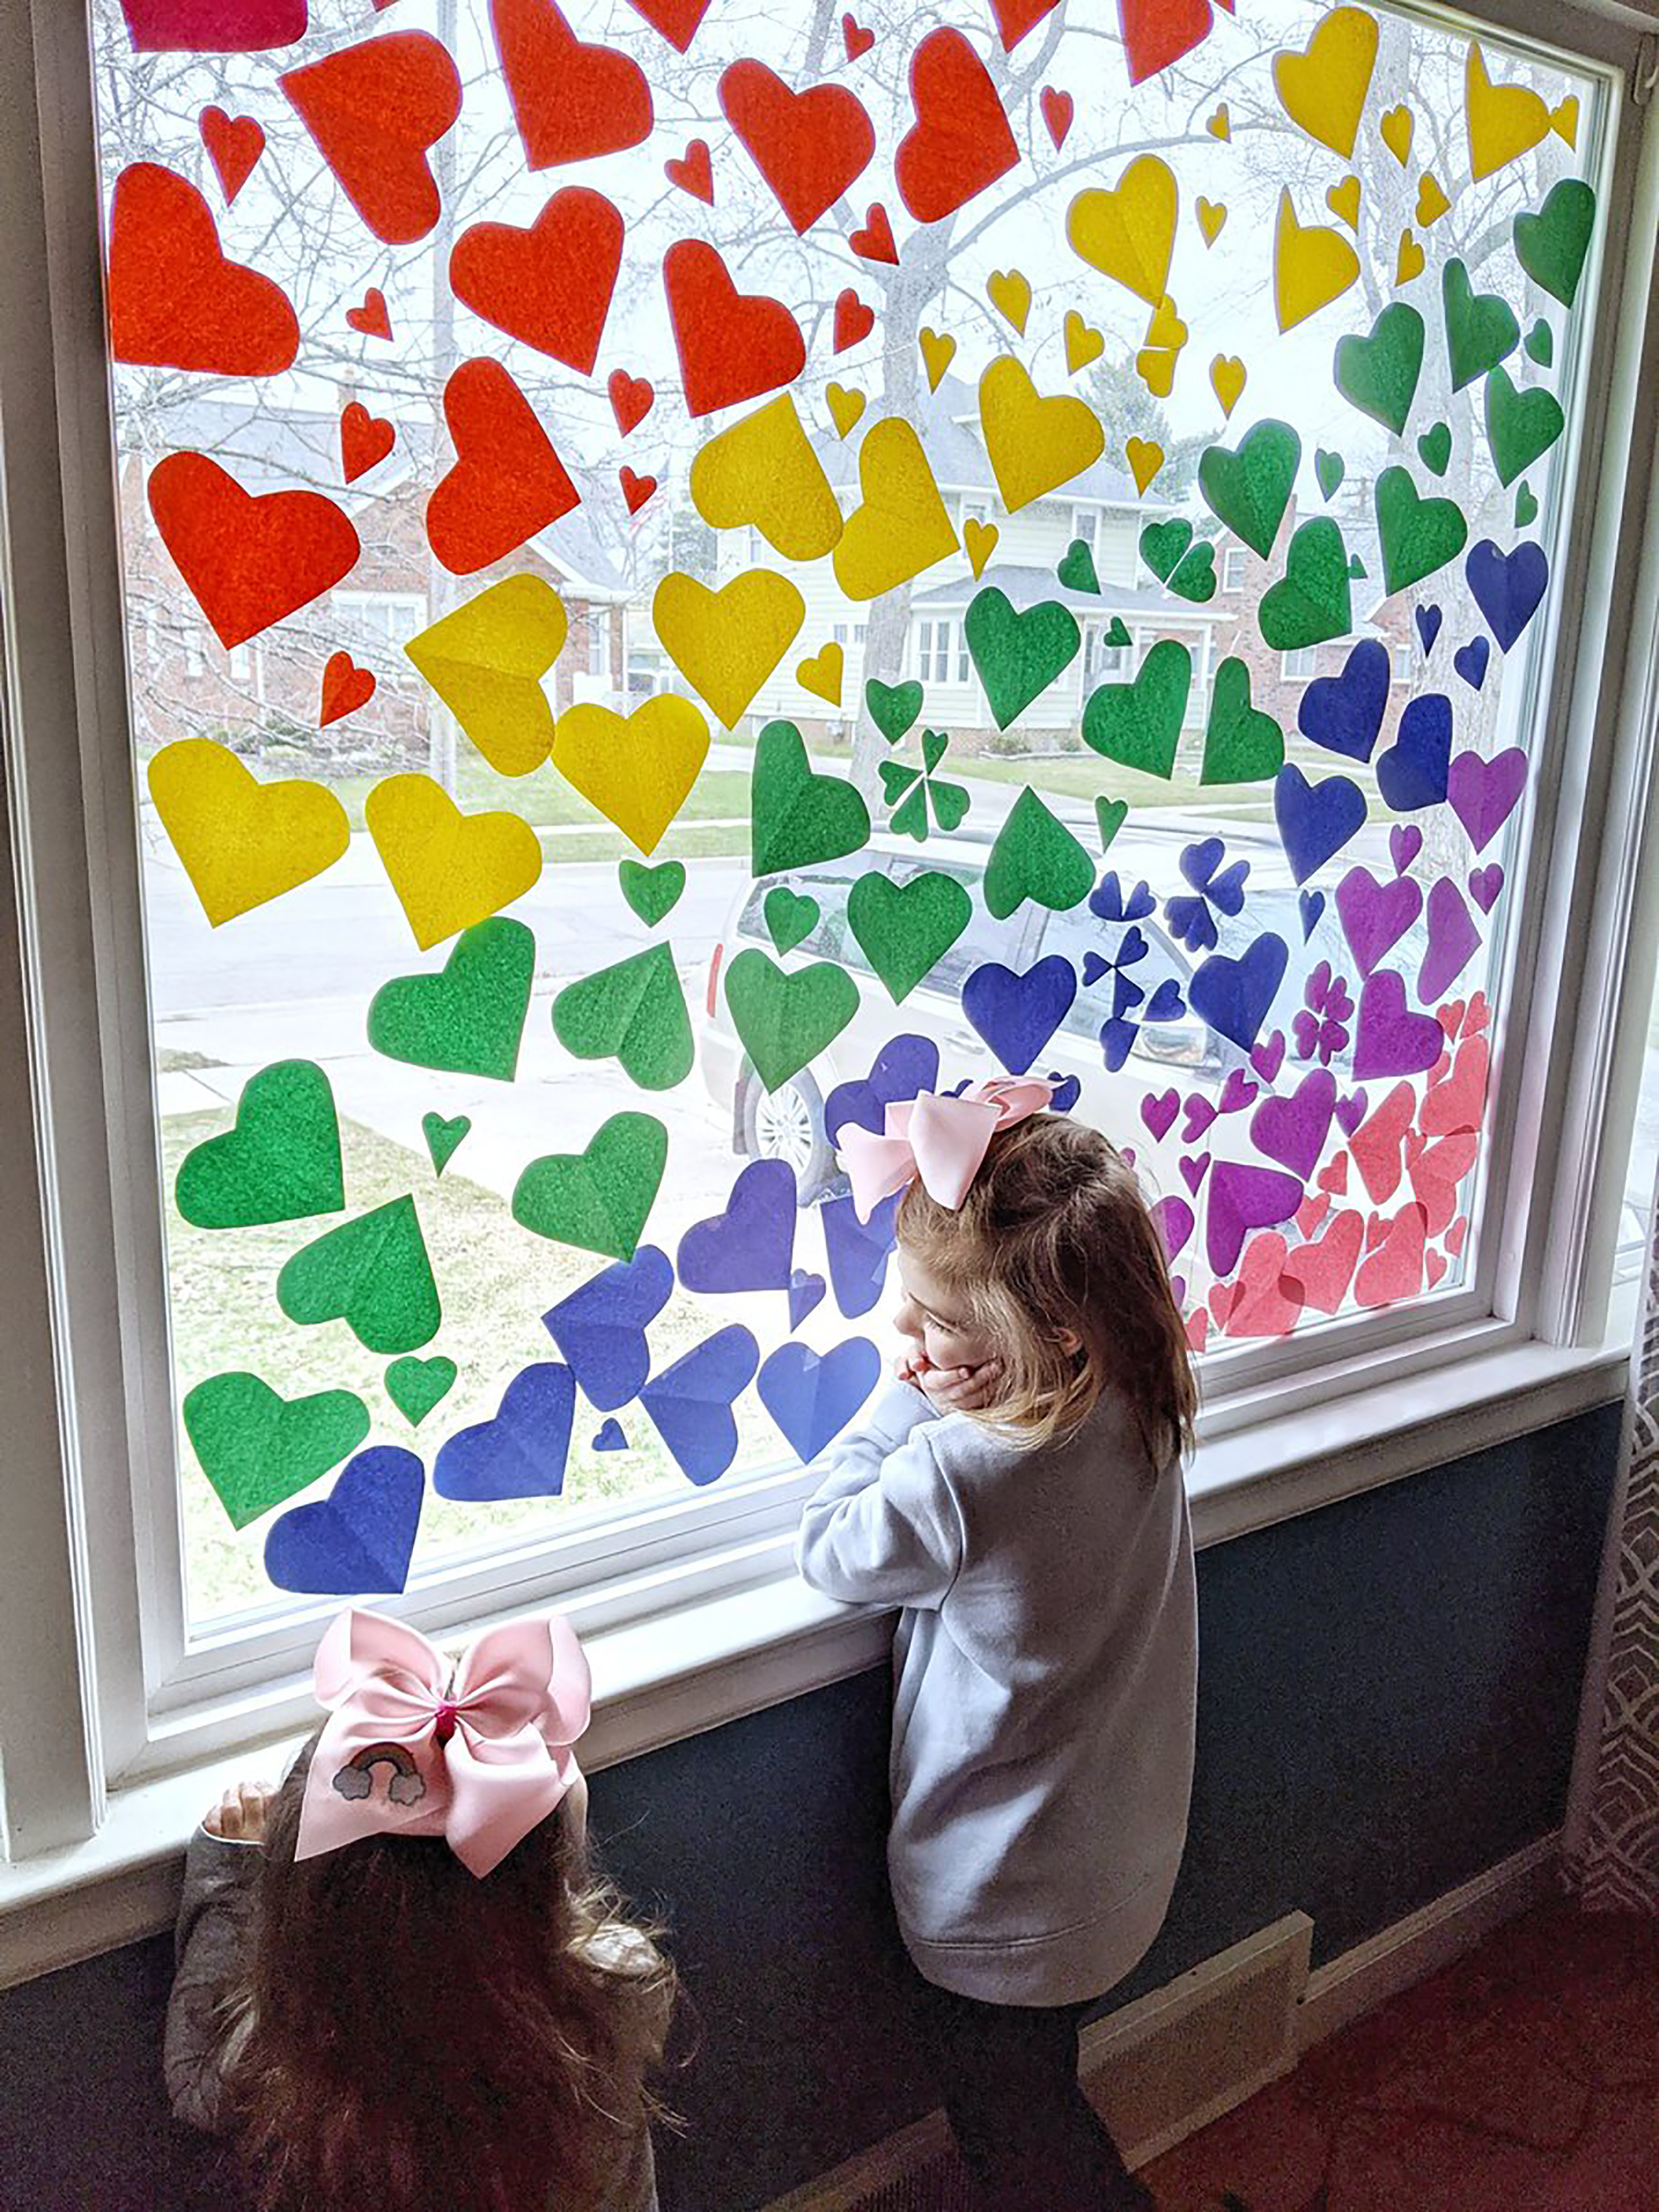 People are decorating their windows with hearts and messages of hope right now